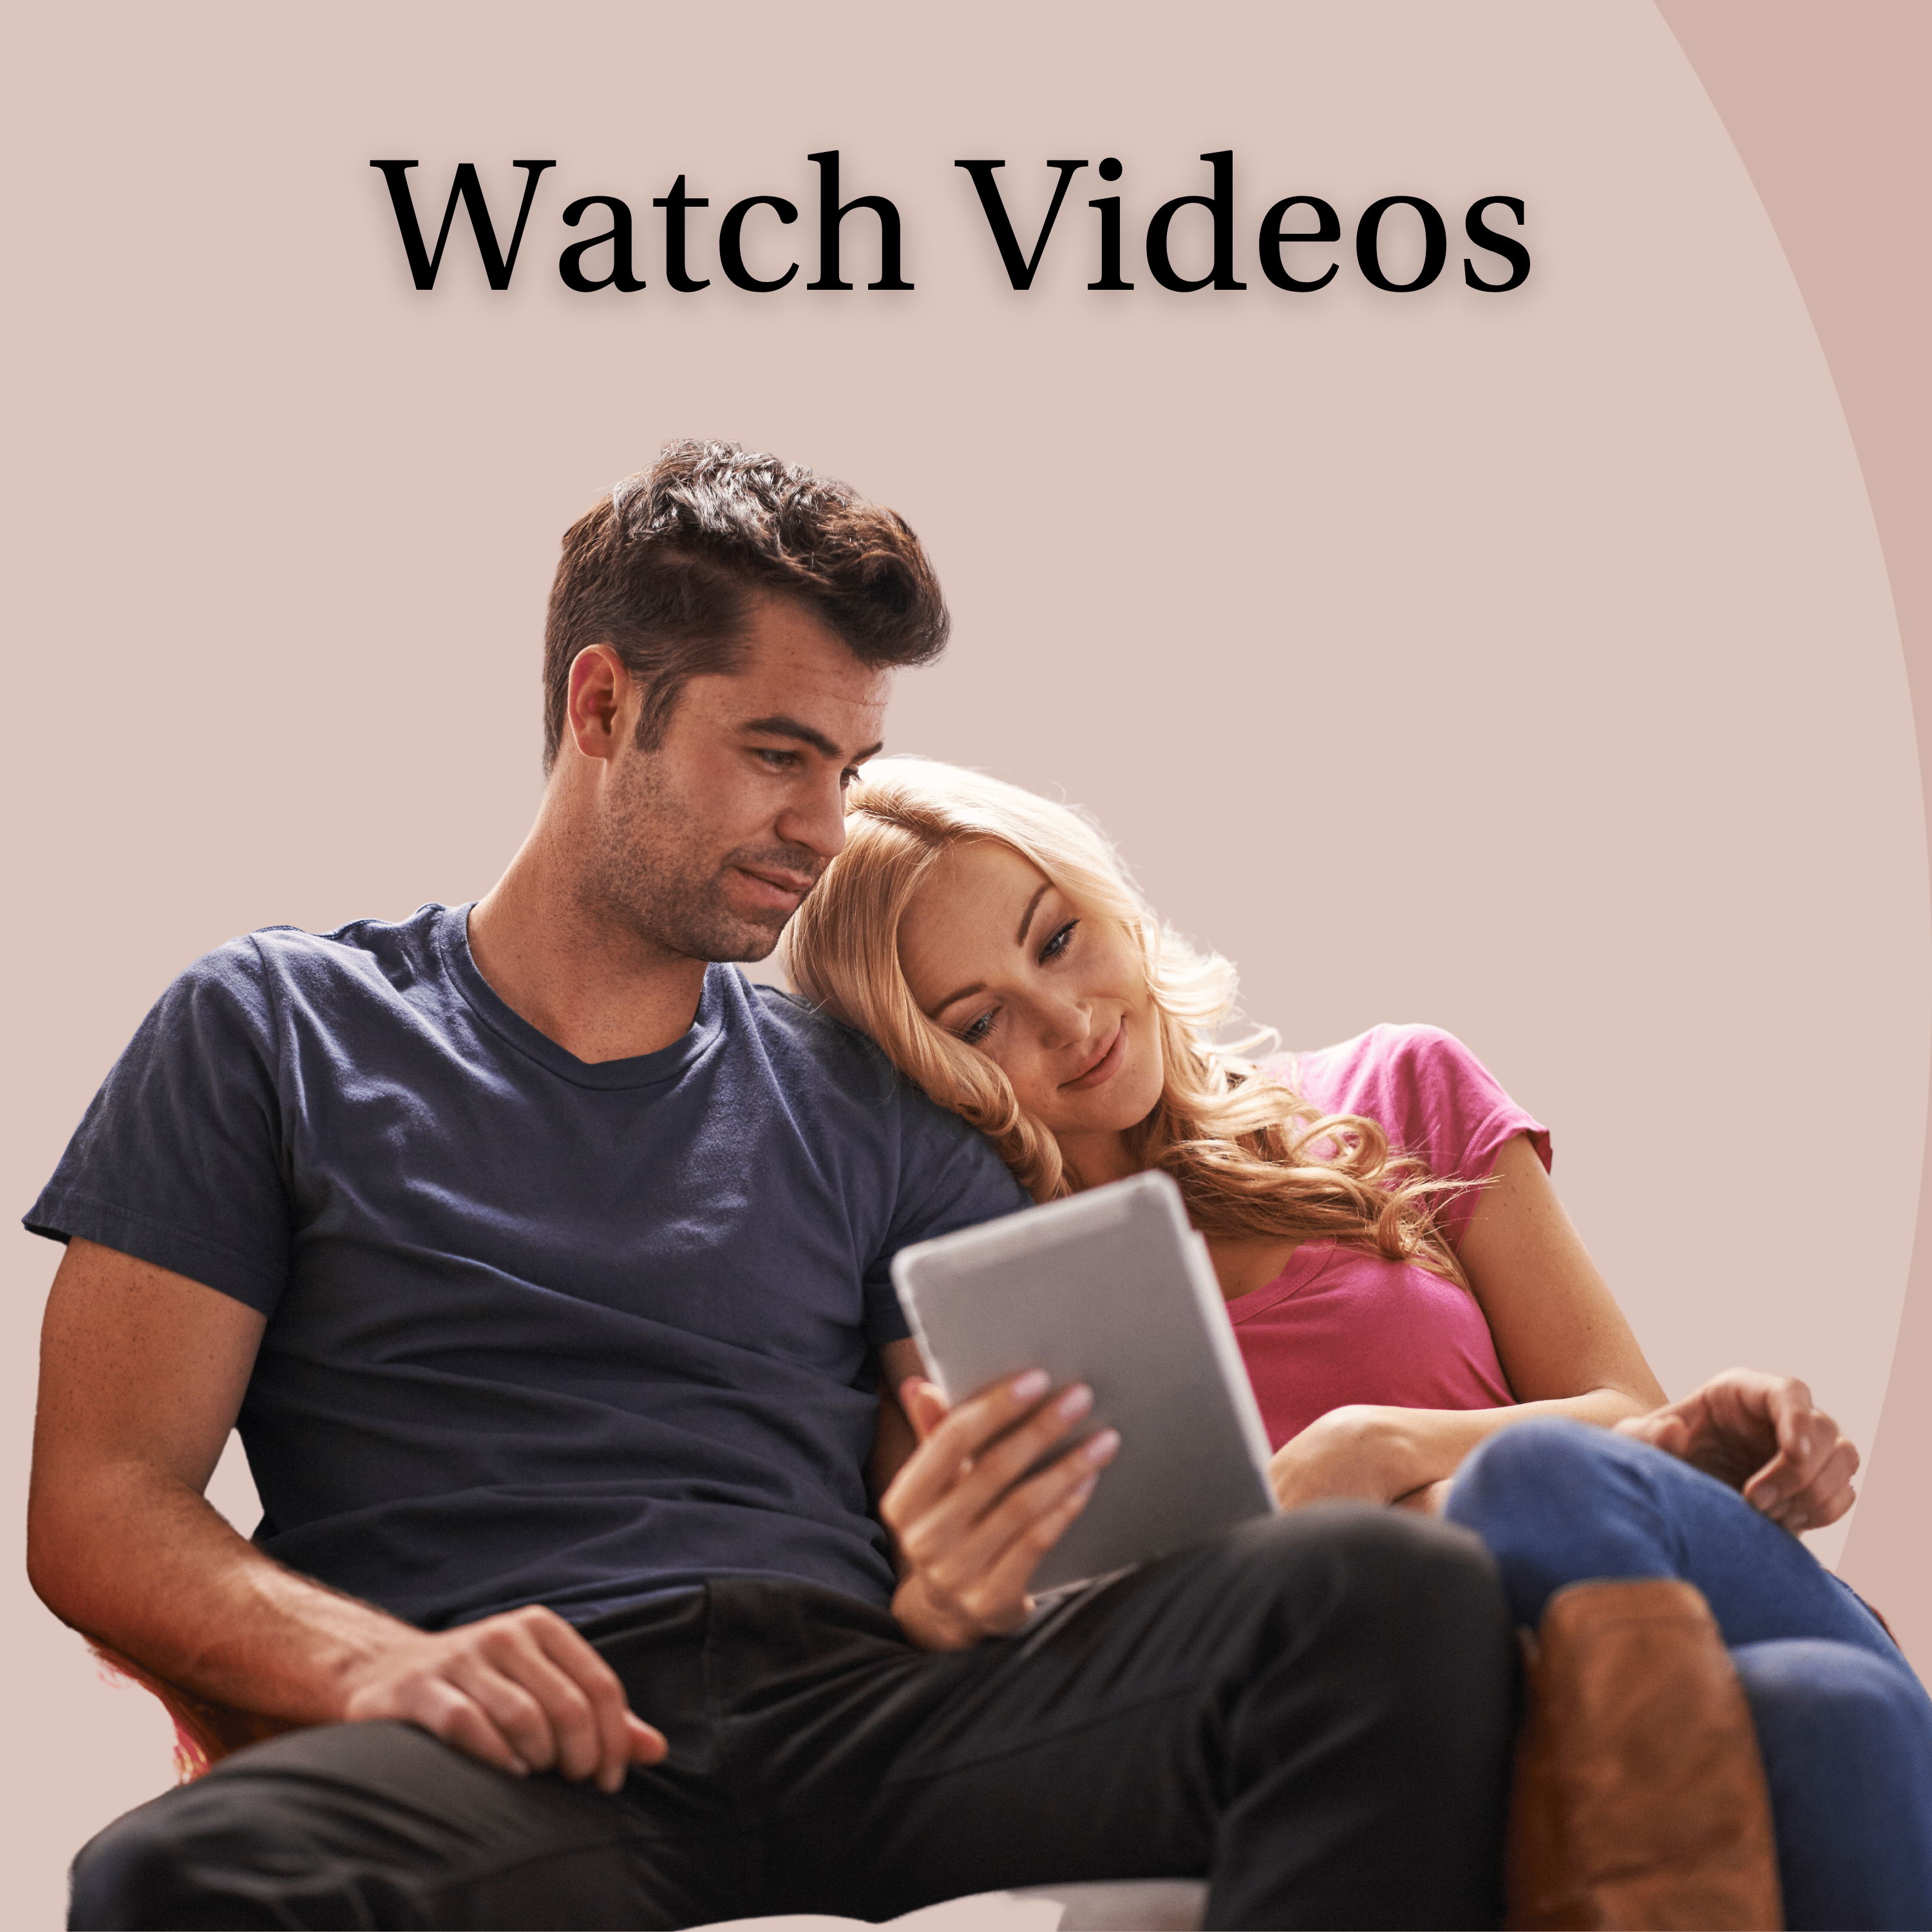 Home Page Watch Videos (3000 x 3000 px)001